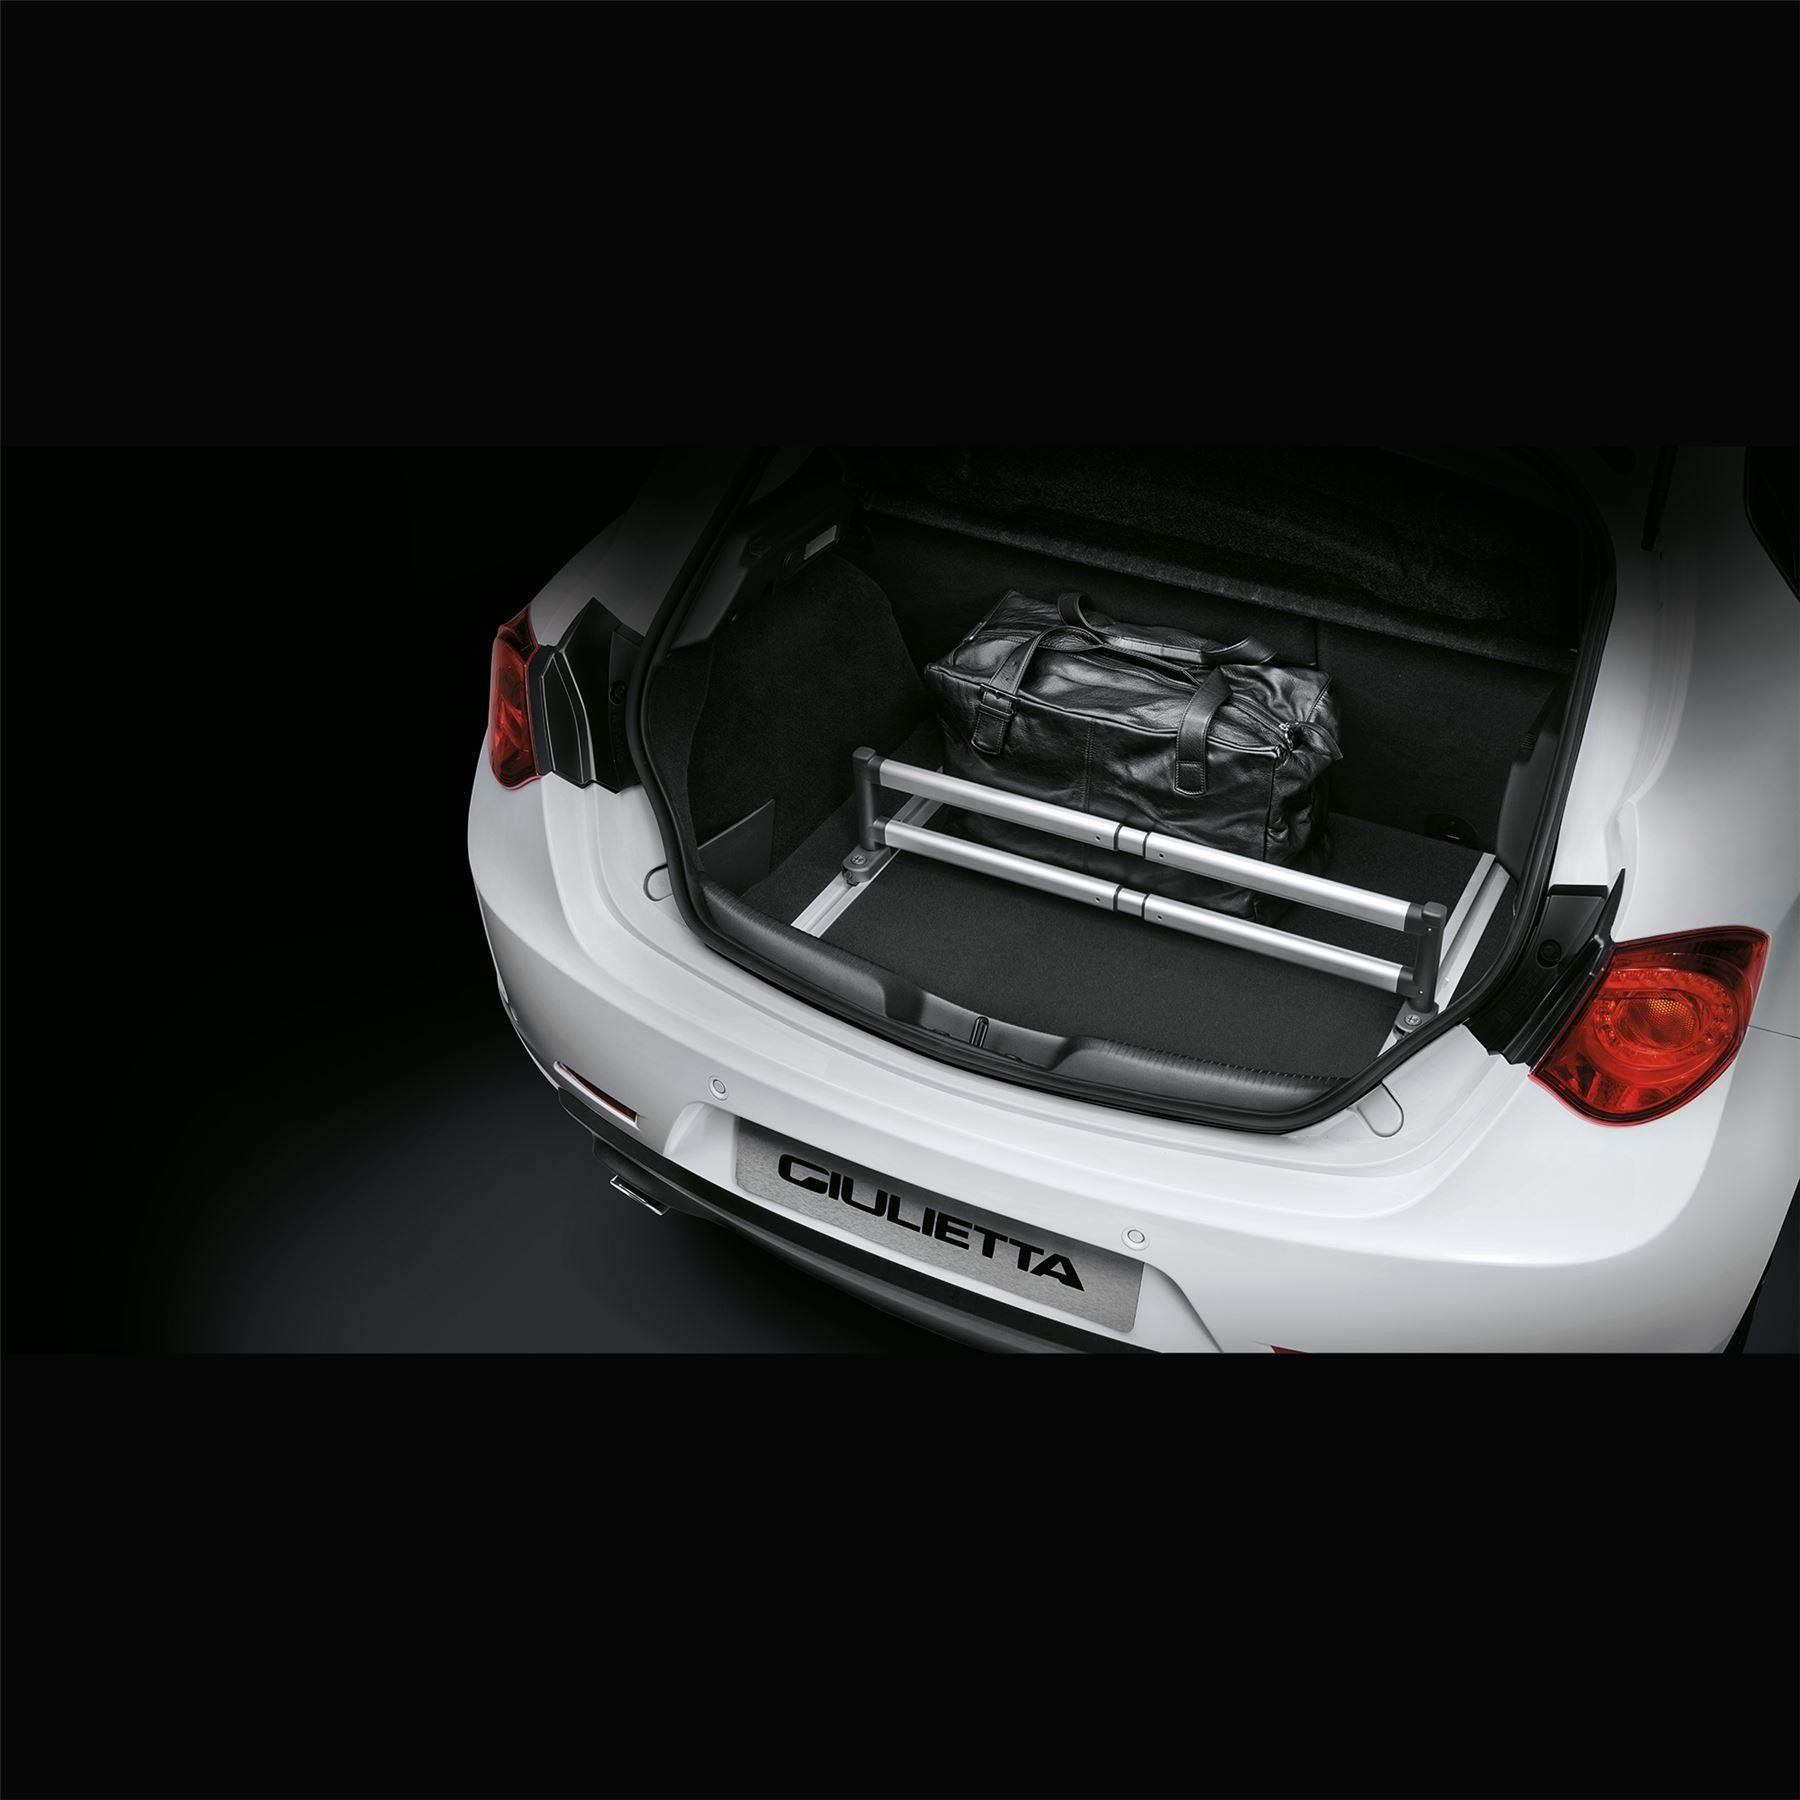 Giulietta Telescopic Bar (Luggage Organiser)